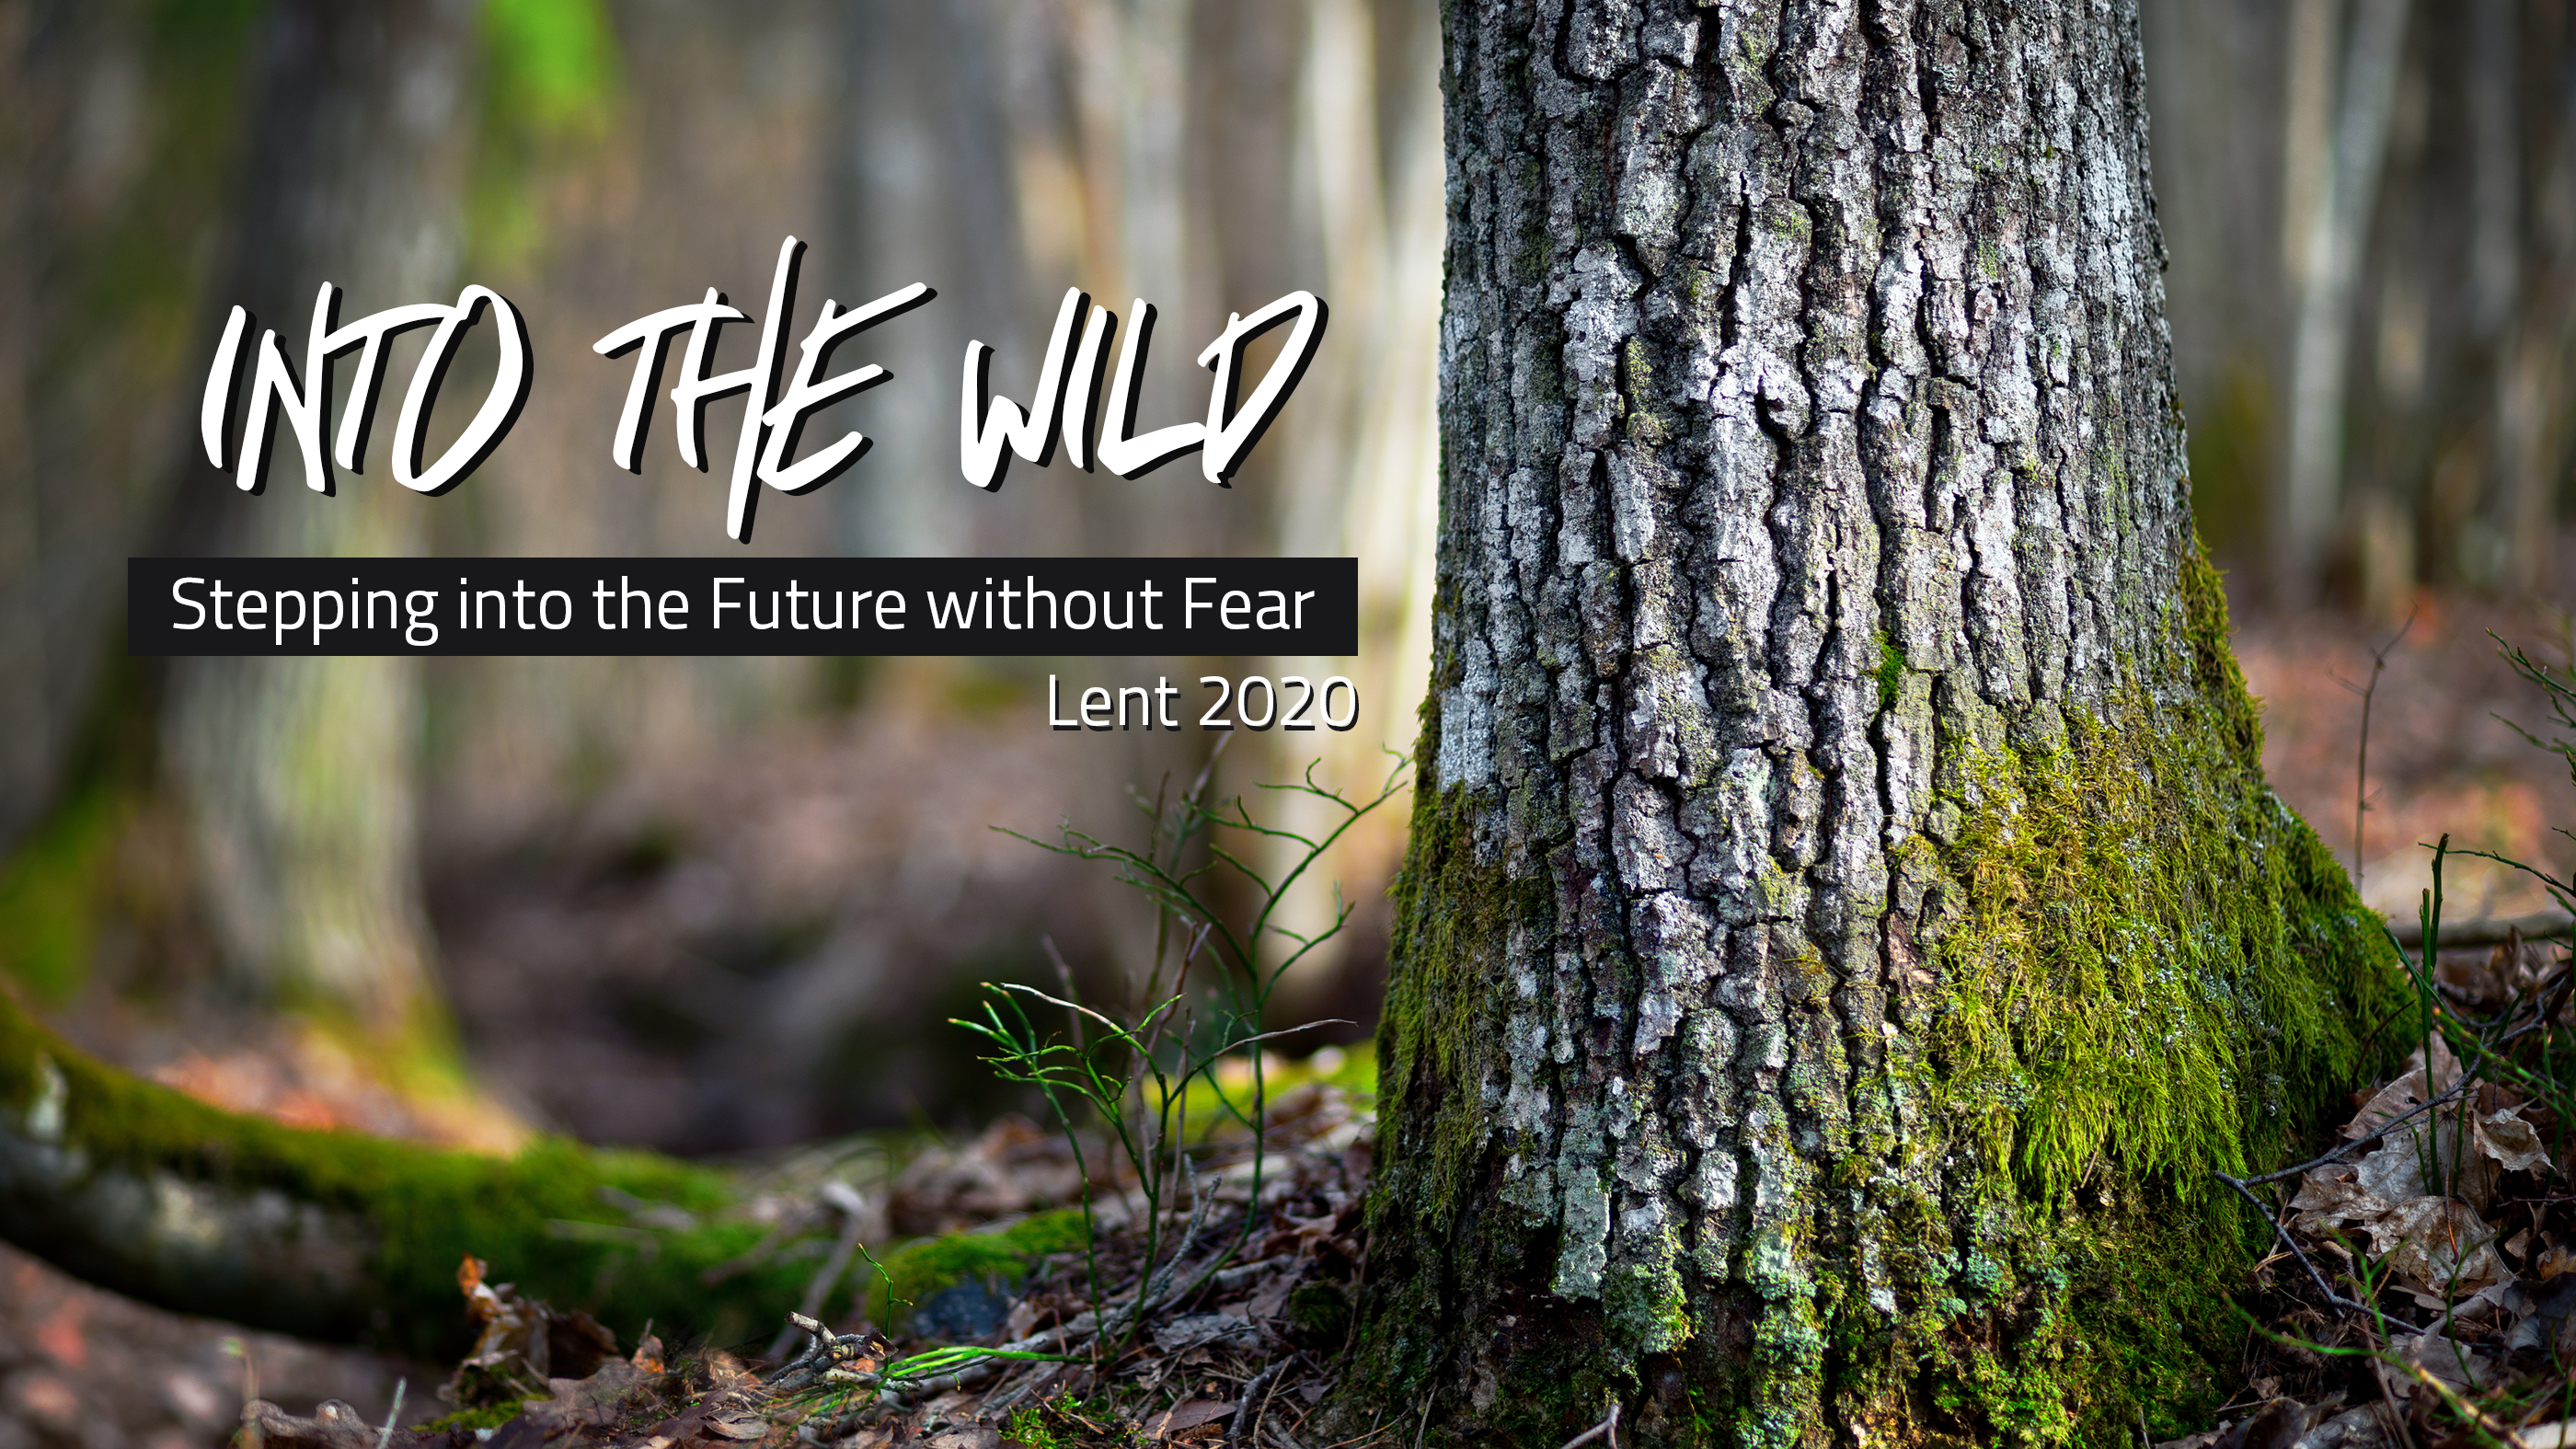 Into the Wild - Lent 2020 at Haymarket Church